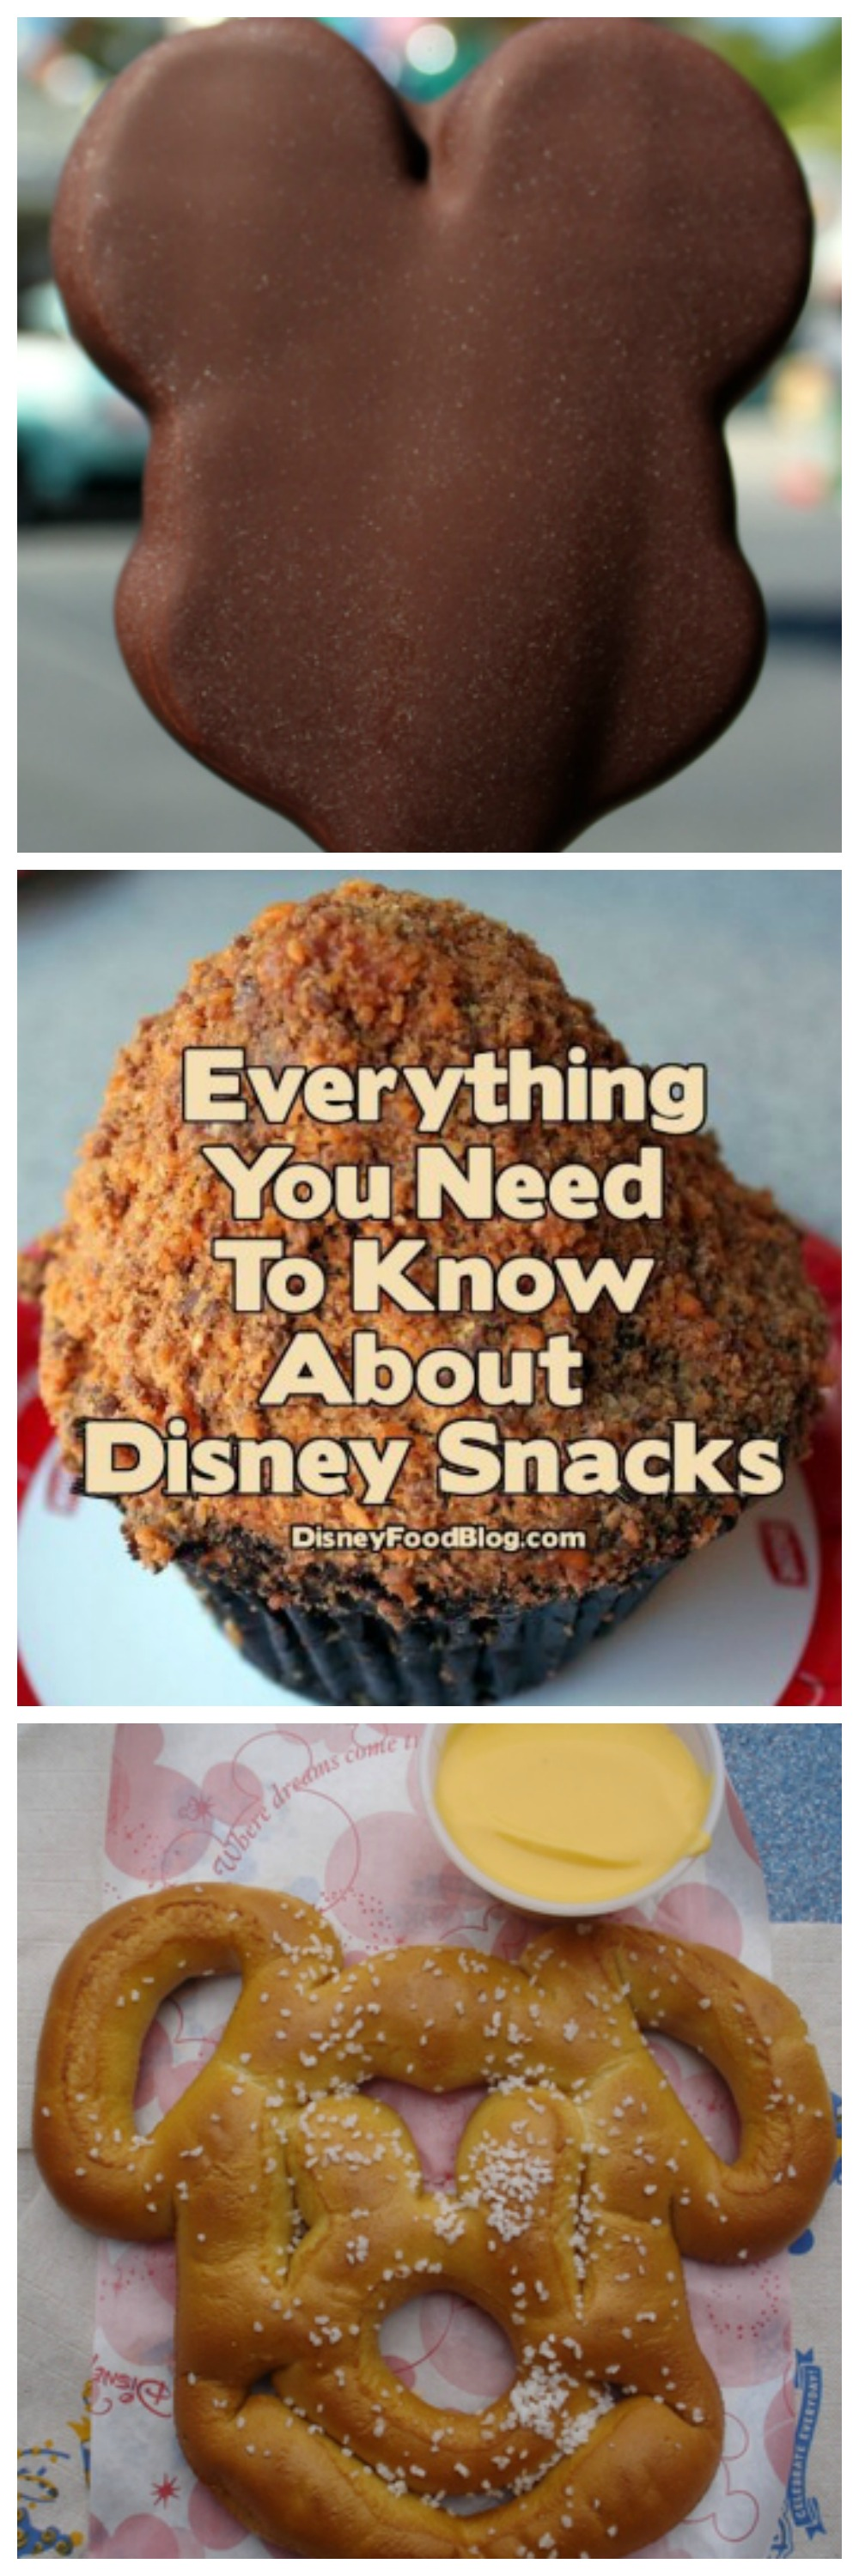 Disney Food Tips -  Everything You Need to Know About Disney Snacks